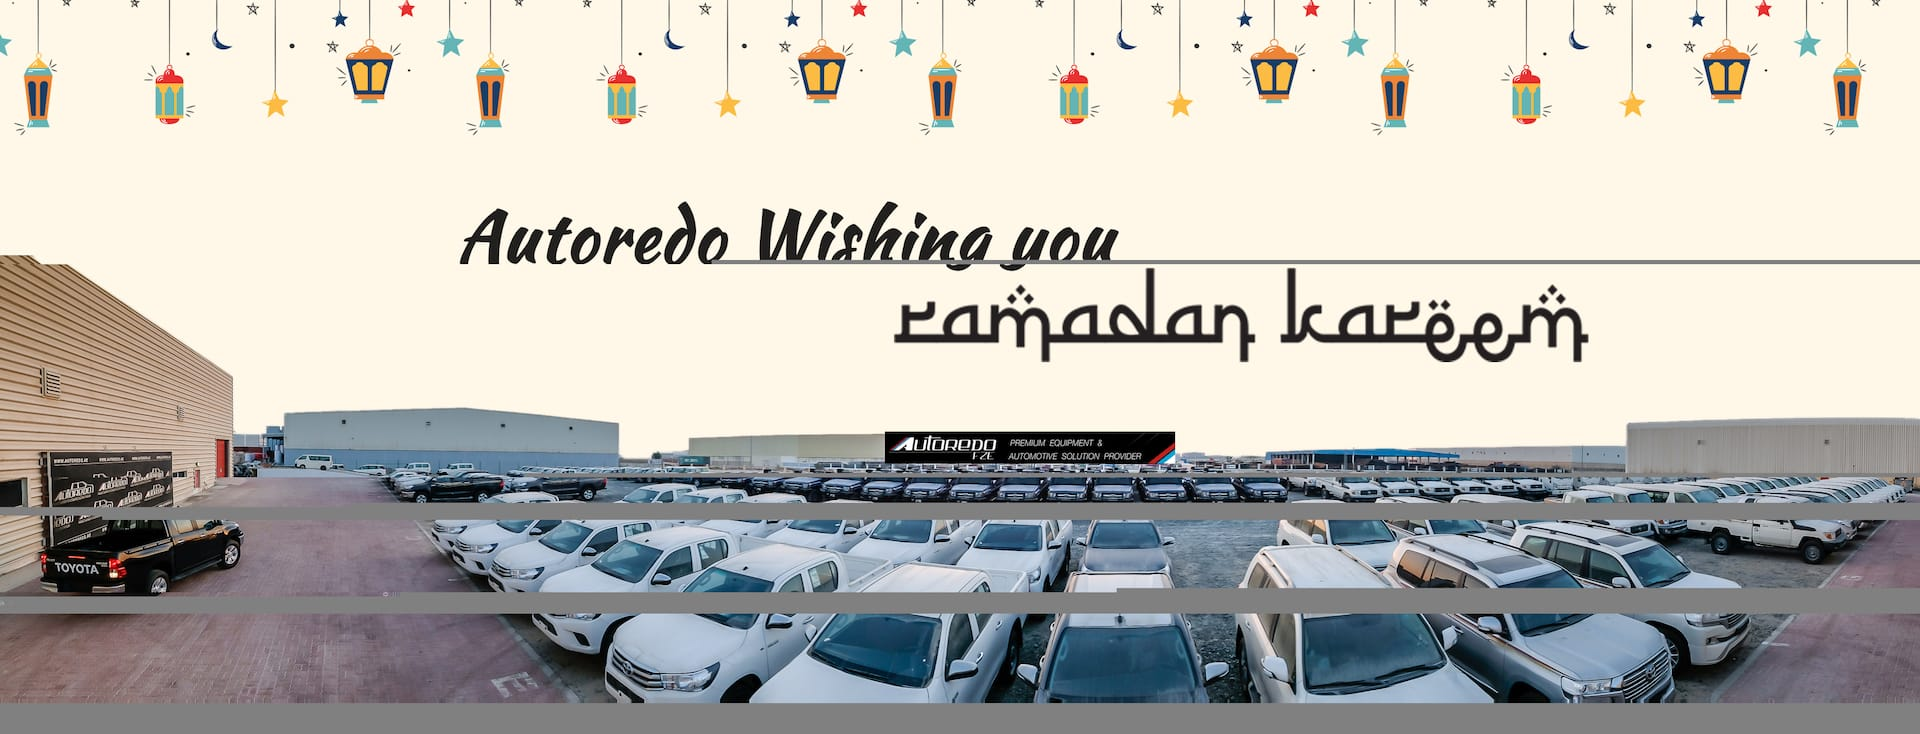 Autoredo wishing you Ramadan Kareem